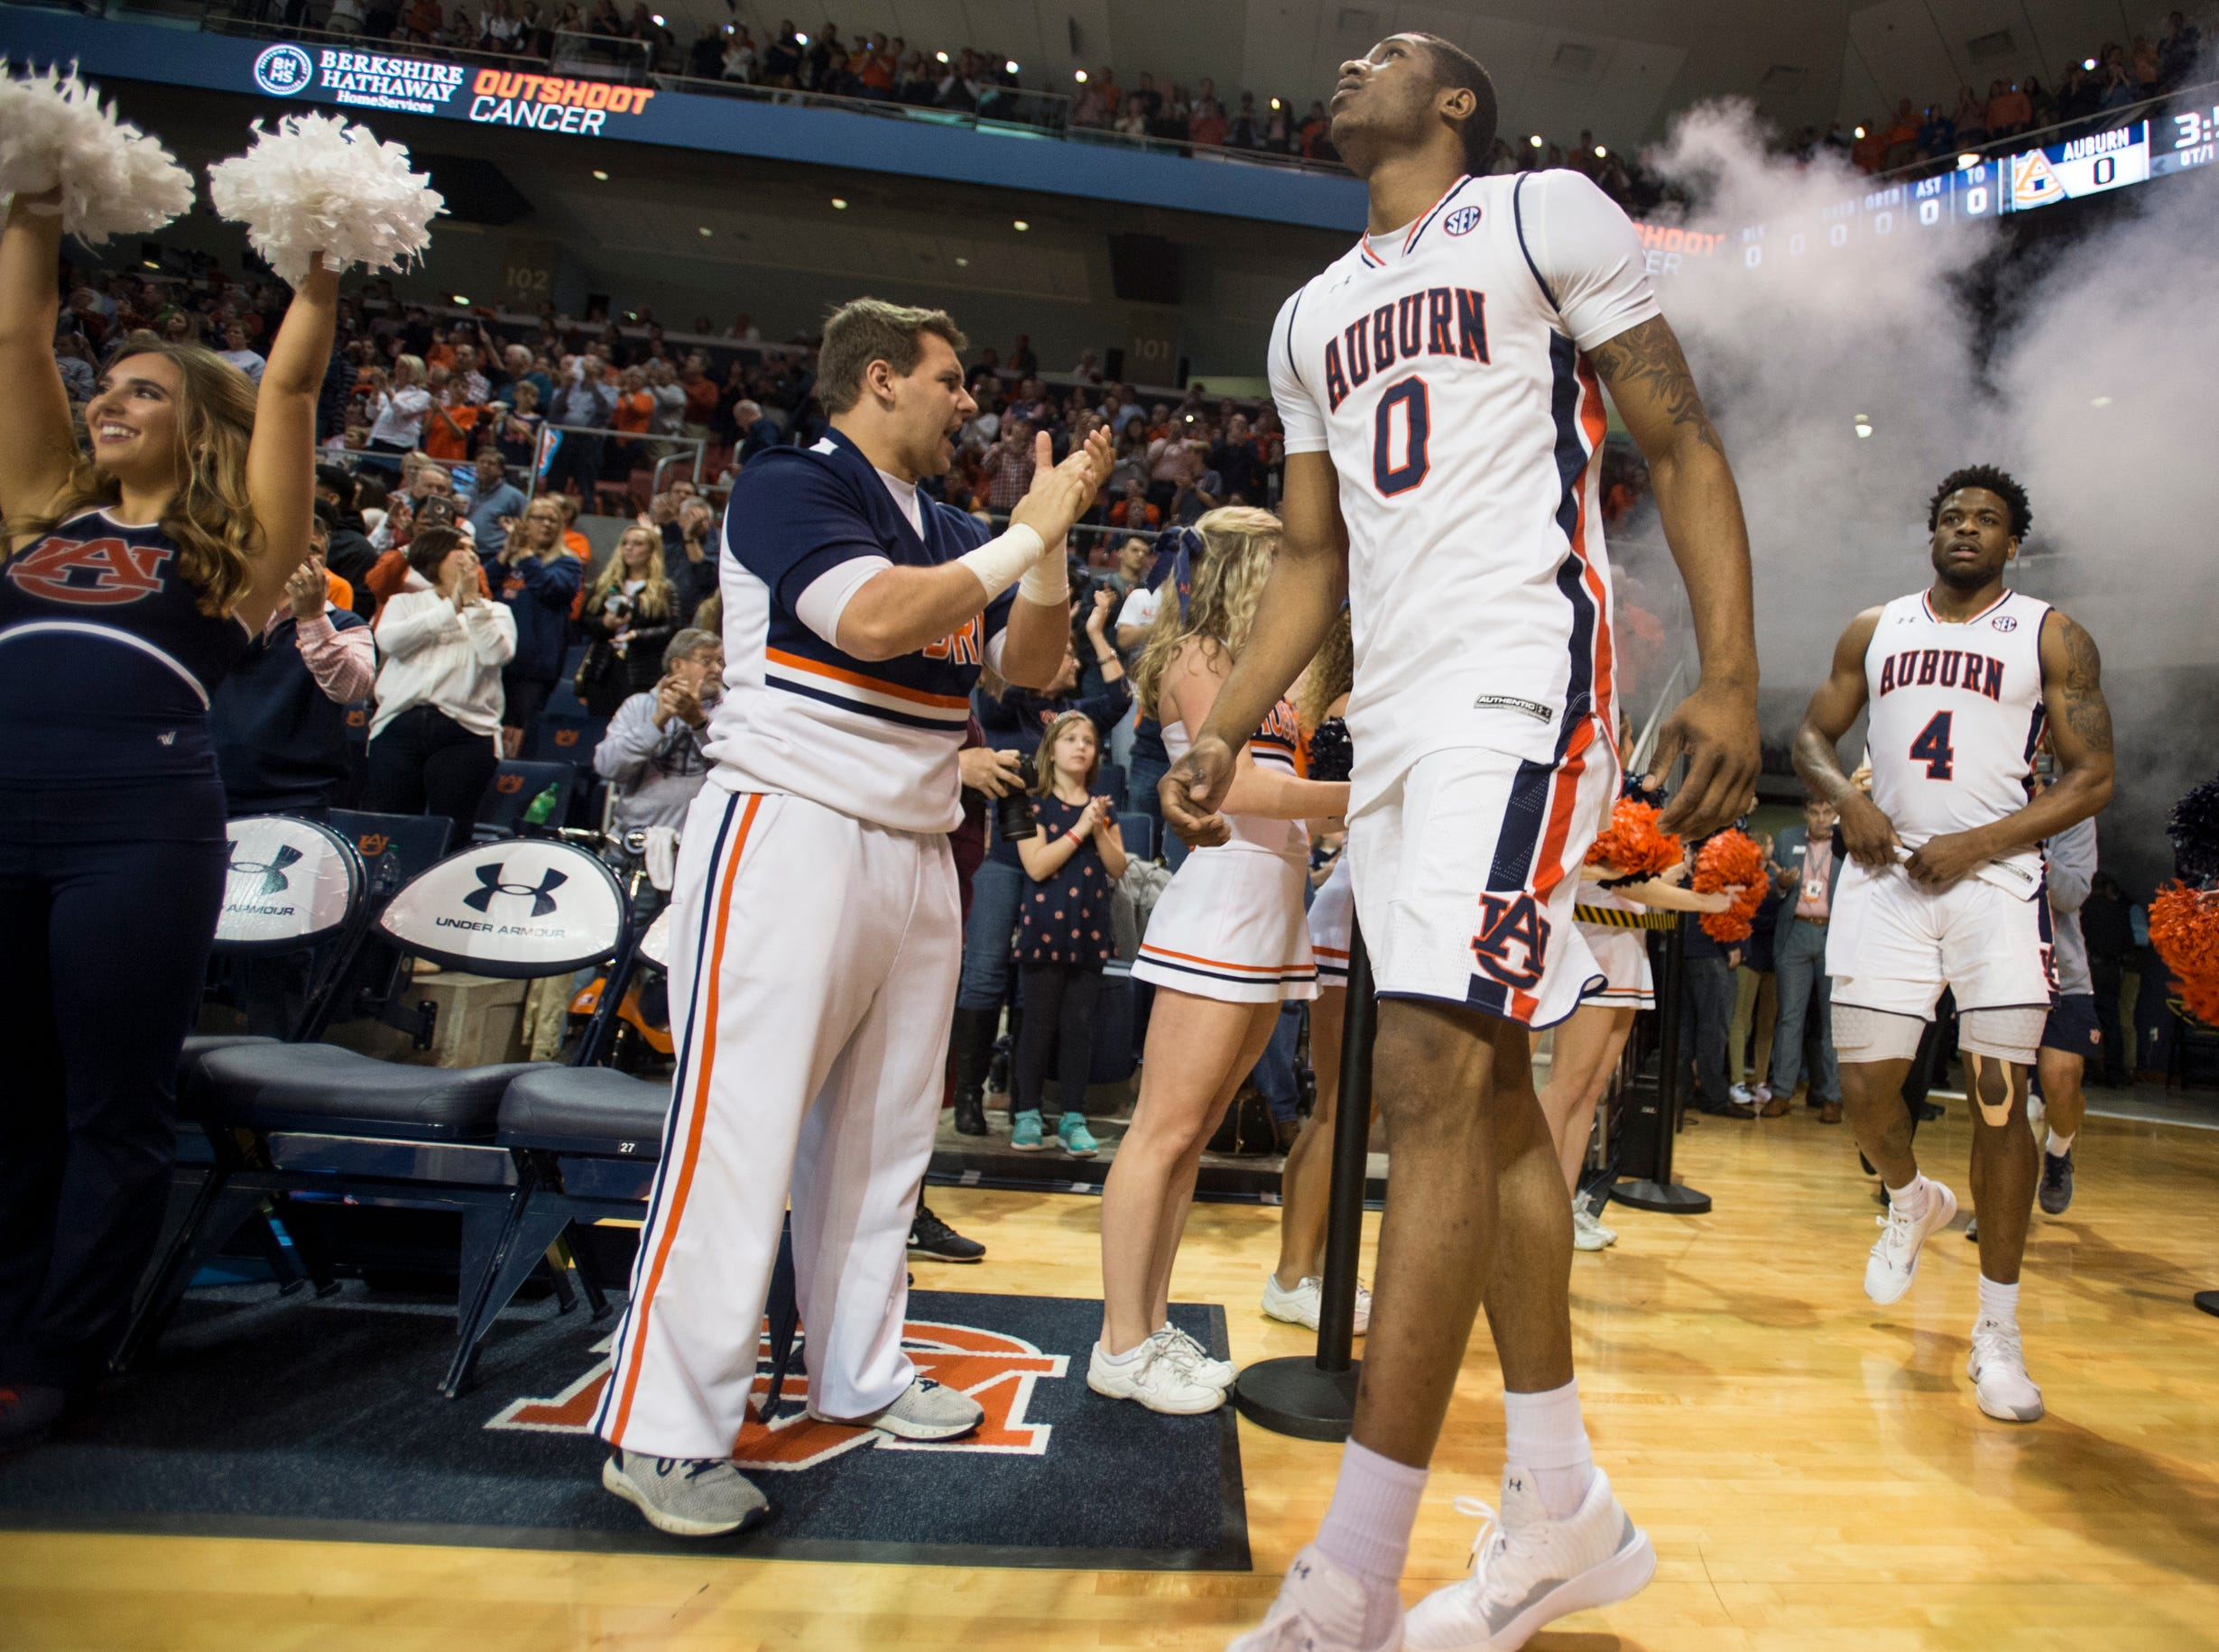 Auburn players take the court at Auburn Arena in Auburn, Ala., on Saturday, Jan. 19, 2019. Kentucky leads Auburn 35-27 at halftime.